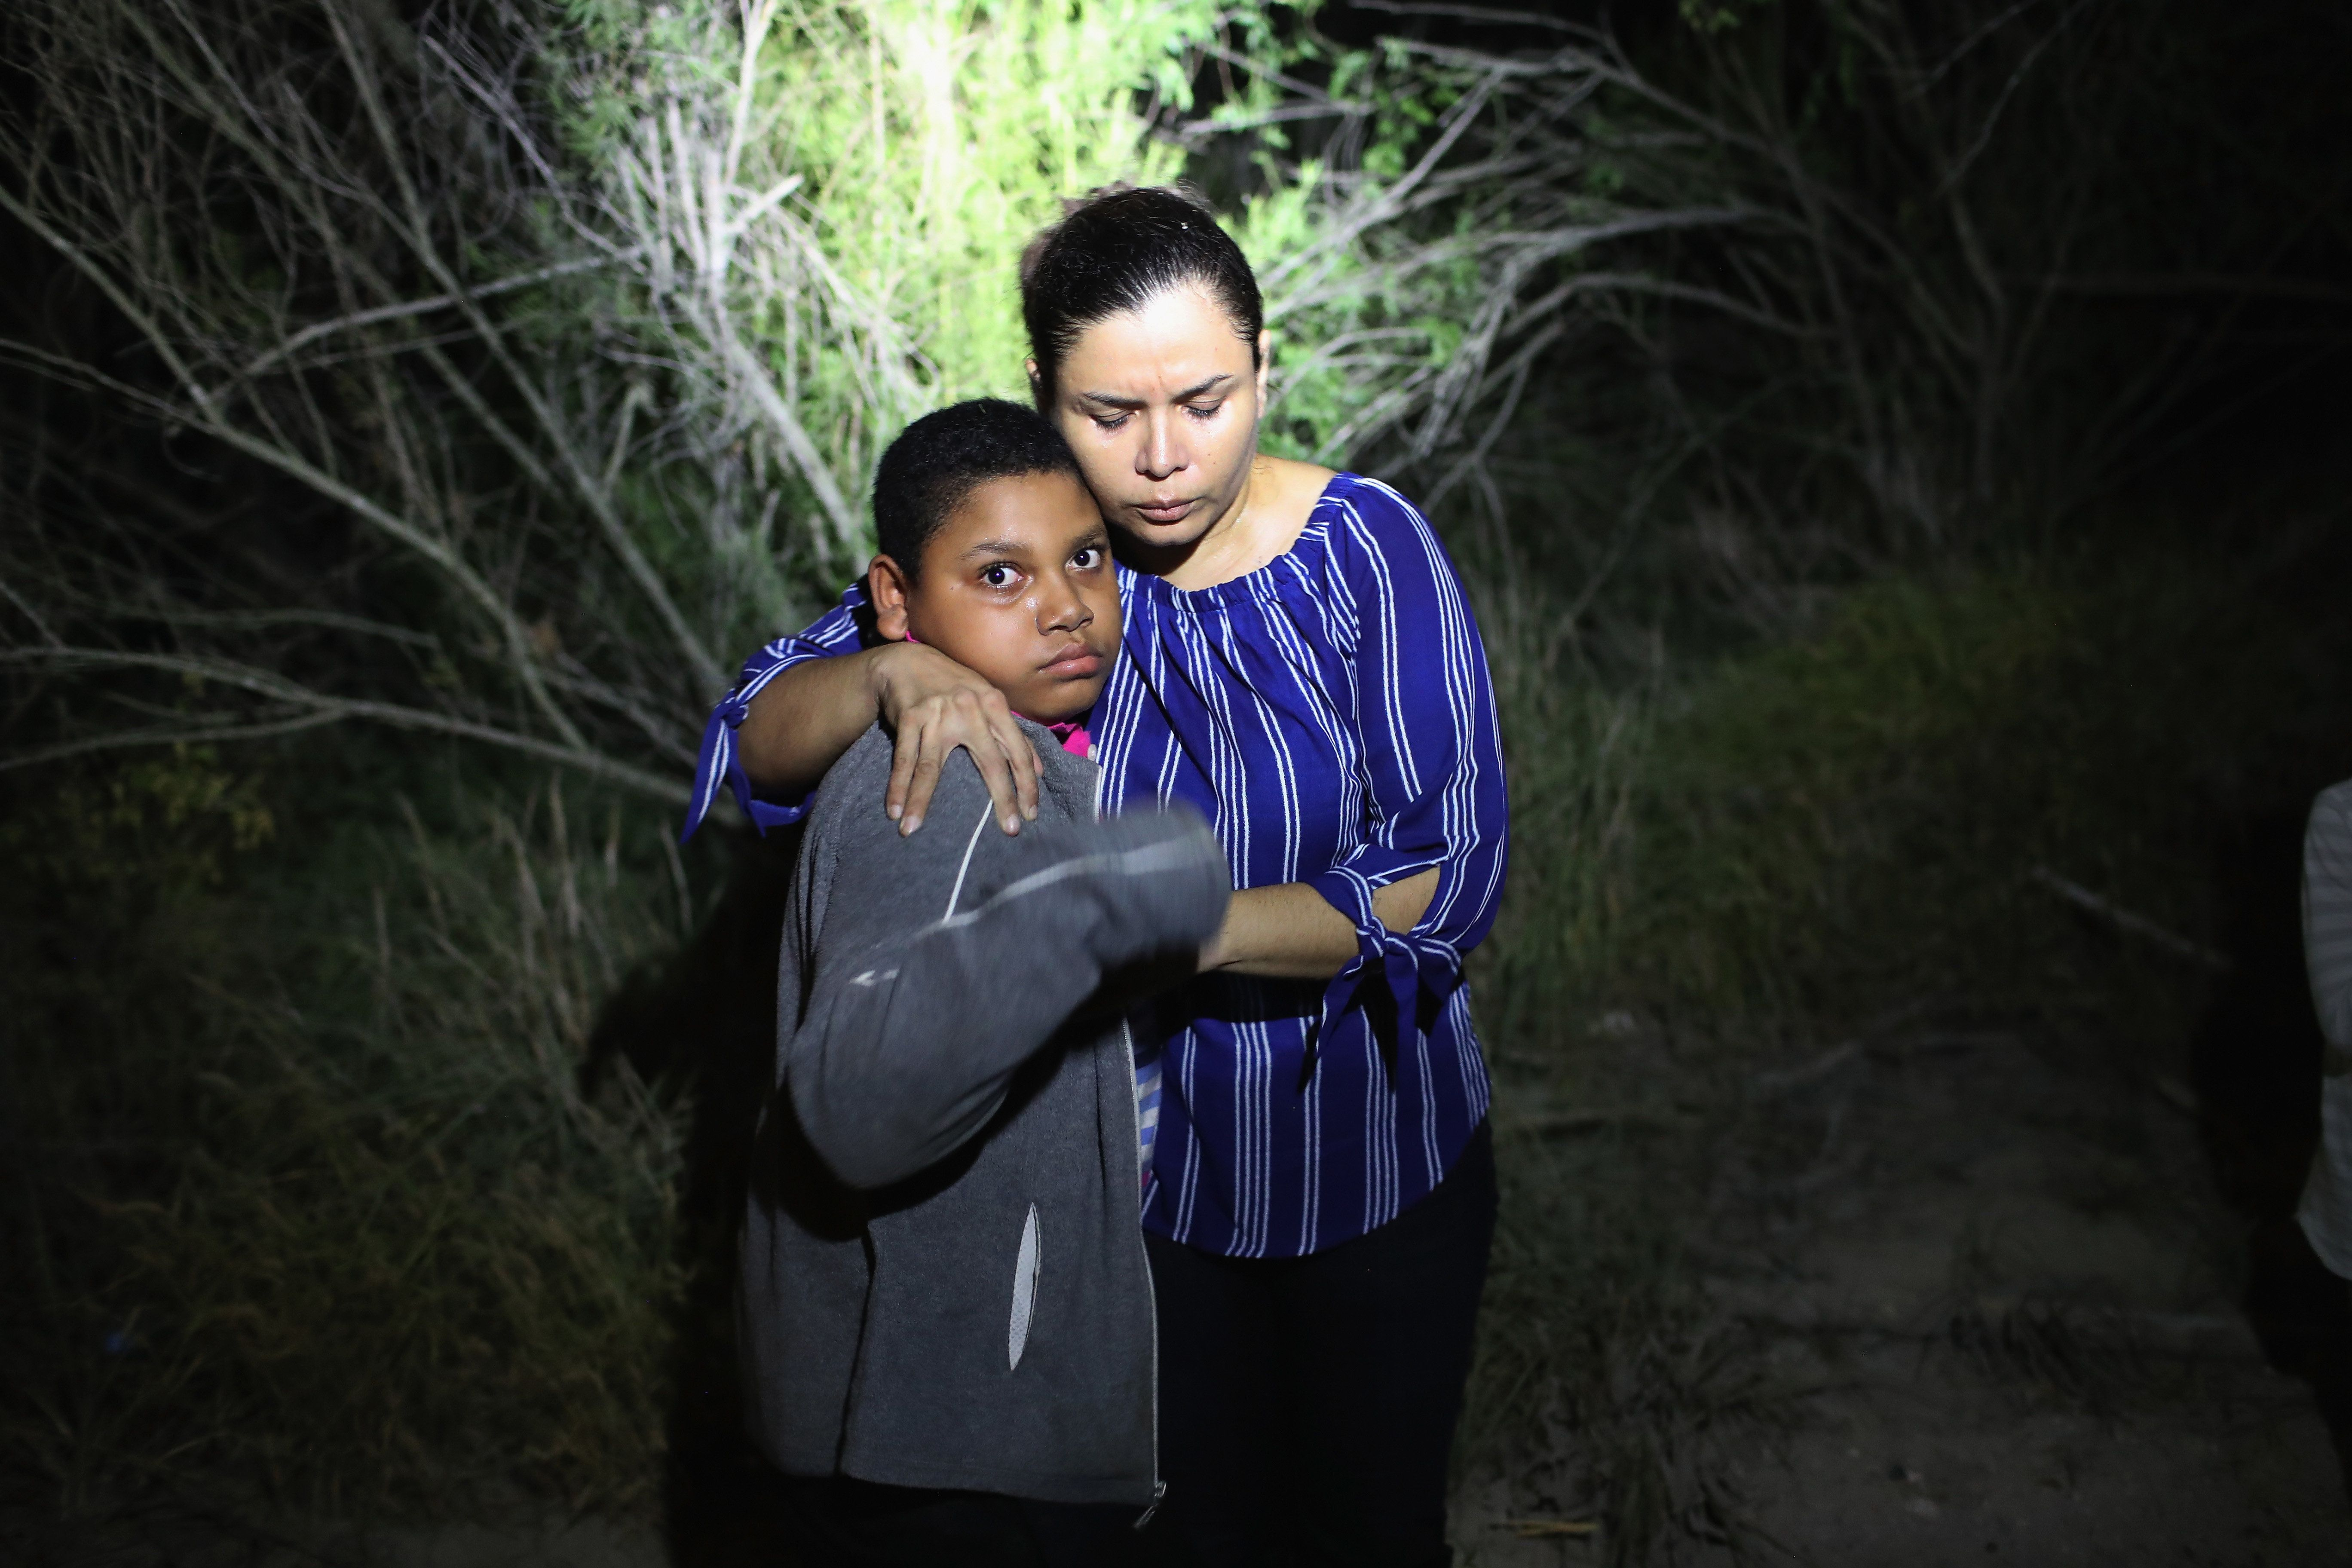 MCALLEN, TX - JUNE 12:  A U.S. Border Patrol spotlight shines on a terrified mother and son from Honduras as they are found in the dark near the U.S.-Mexico border on June 12, 2018 in McAllen, Texas. The asylum seekers had rafted across the Rio Grande from Mexico and had become lost in the woods. They were then detained by Border Patrol agents and then sent to a processing center for possible separation. Customs and Border Protection (CBP) is executing the Trump administration's 'zero tolerance' policy towards undocumented immigrants. U.S. Attorney General Jeff Sessions also said that domestic and gang violence in immigrants' country of origin would no longer qualify them for political asylum status.  (Photo by John Moore/Getty Images)